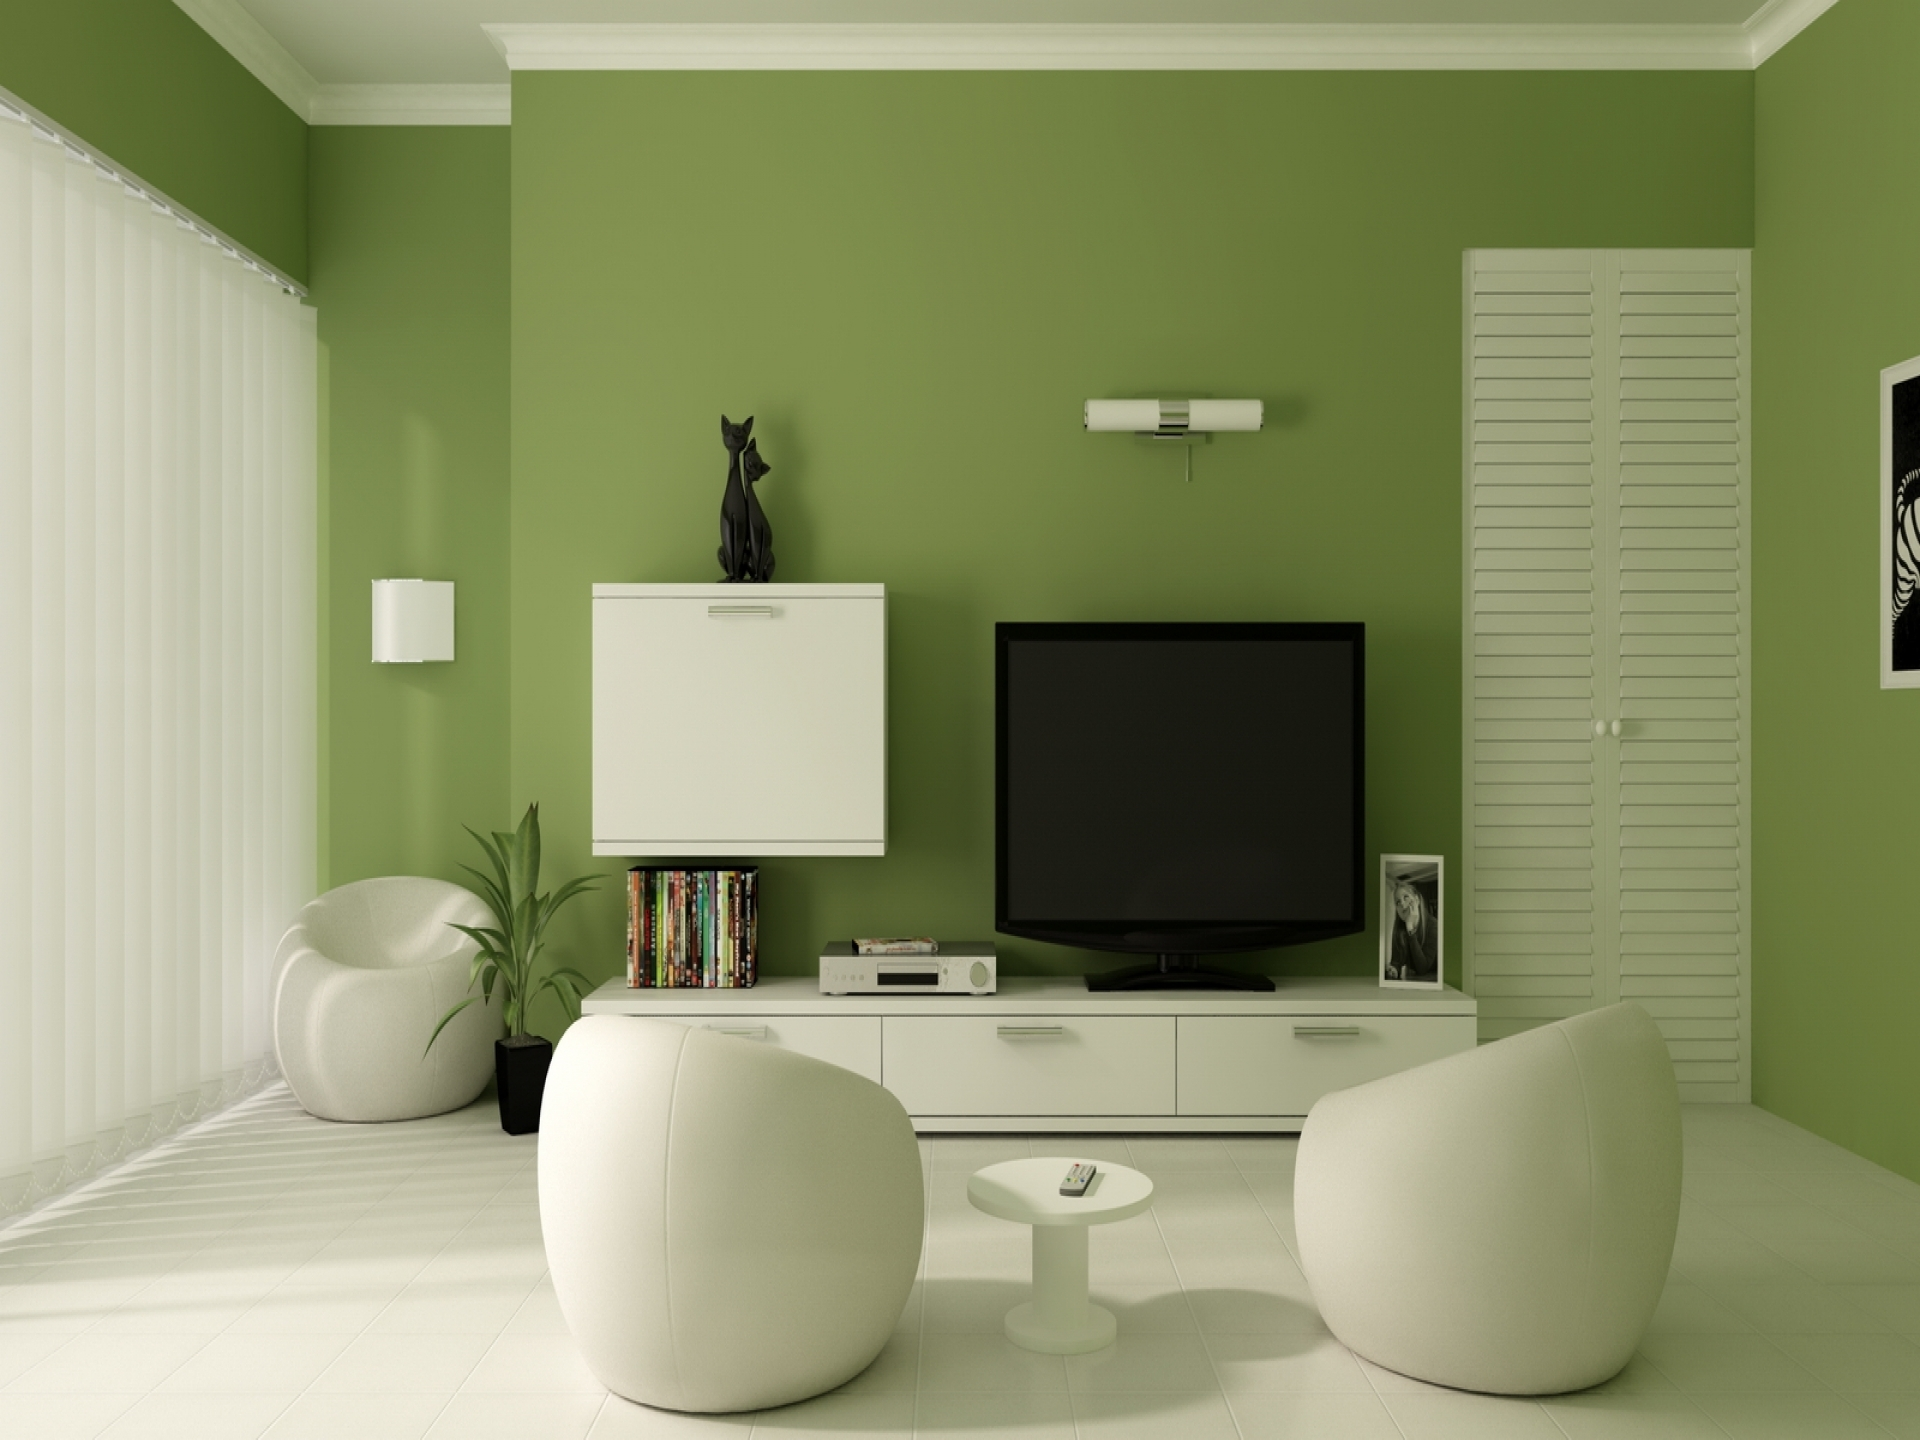 Living Room, Green Accent Wall Also White Ceramic Tile Flooring With Regard To Most Up To Date Green Room Wall Accents (View 11 of 15)